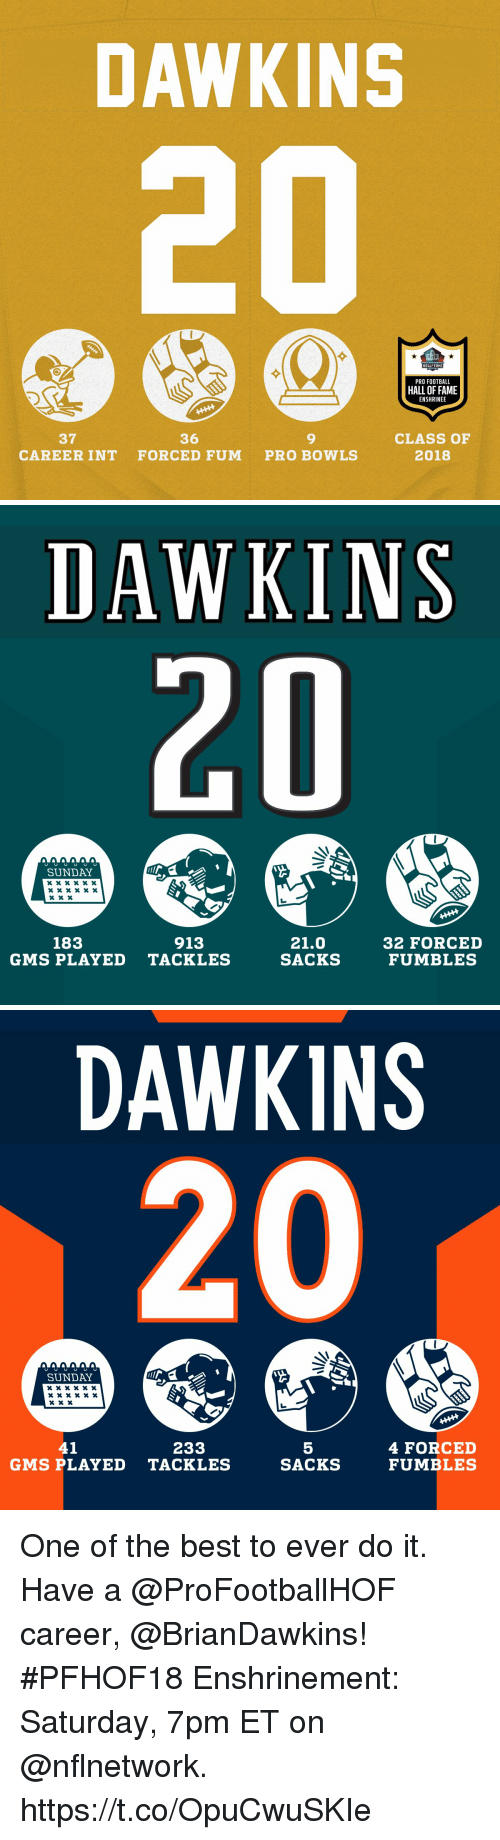 gms: DAWKINS  HALL FAME  PRO FOOTBALL  HALL OF FAME  ENSHRINEE  37  CAREER INT  36  FORCED FUM  9  PRO BOWLS  CLASS OF  2018   DAWKINS  UU UU0  SUNDAY  x x x « x «  183  913  21.0  SACKS  32 FORCED  FUMBLES  GMS PLAYED TACKLES   DAWKINS  SUNDAY  41  233  5  SACKS  4 FORCED  FUMBLES  GMS PLAYED TACKLES One of the best to ever do it. Have a @ProFootballHOF career, @BrianDawkins!  #PFHOF18 Enshrinement: Saturday, 7pm ET on @nflnetwork. https://t.co/OpuCwuSKIe